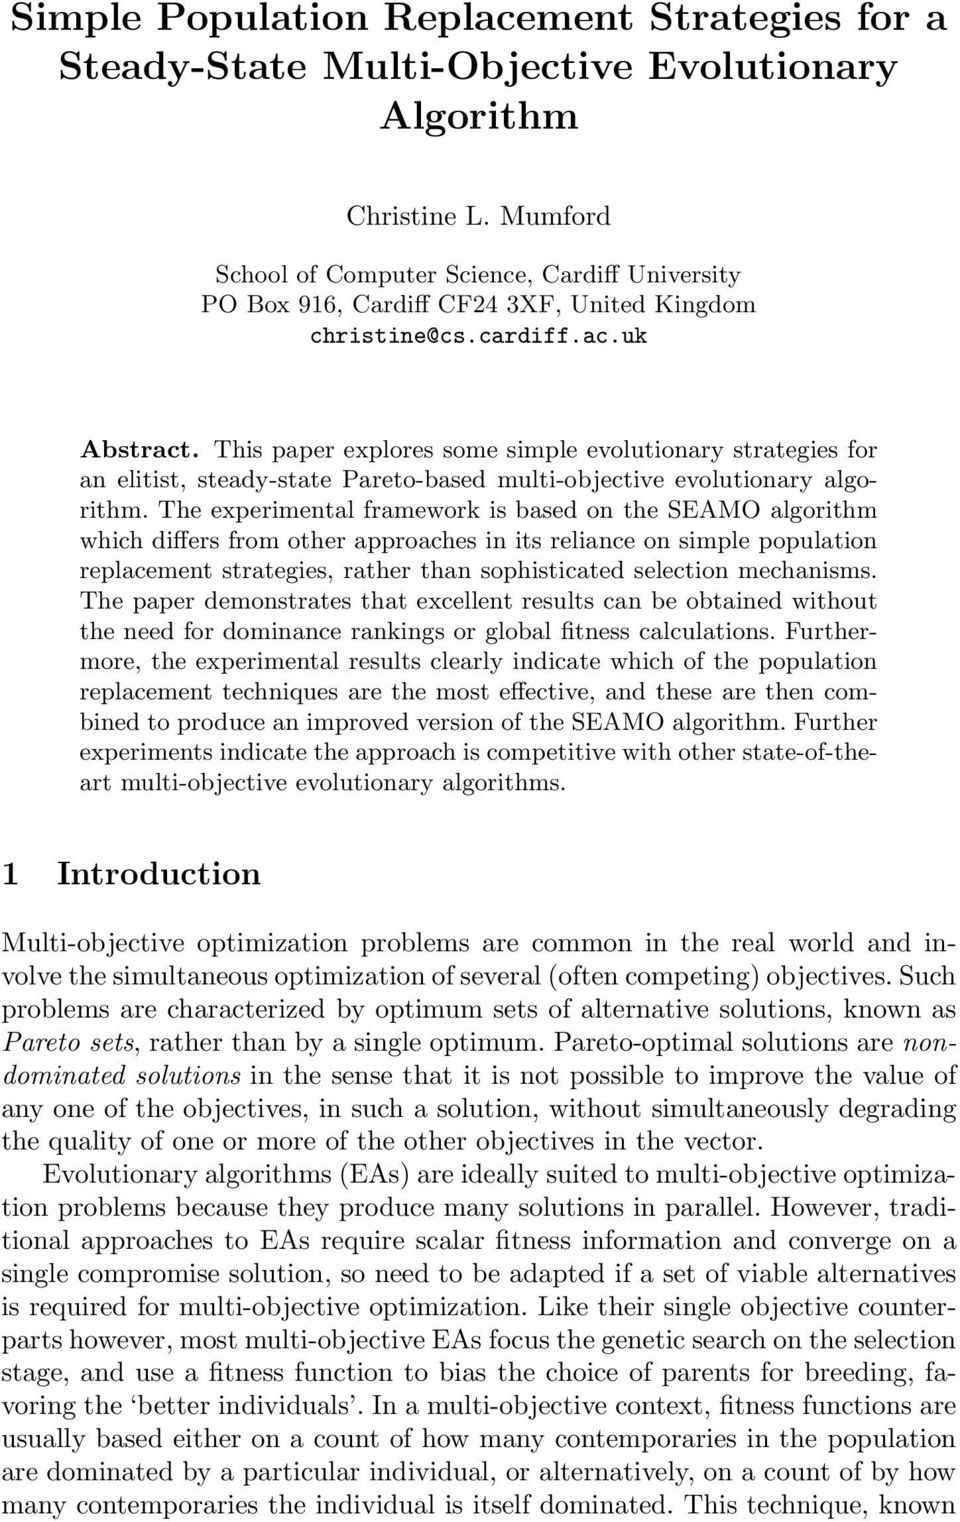 This paper explores some simple evolutionary strategies for an elitist, steady-state Pareto-based multi-objective evolutionary algorithm.